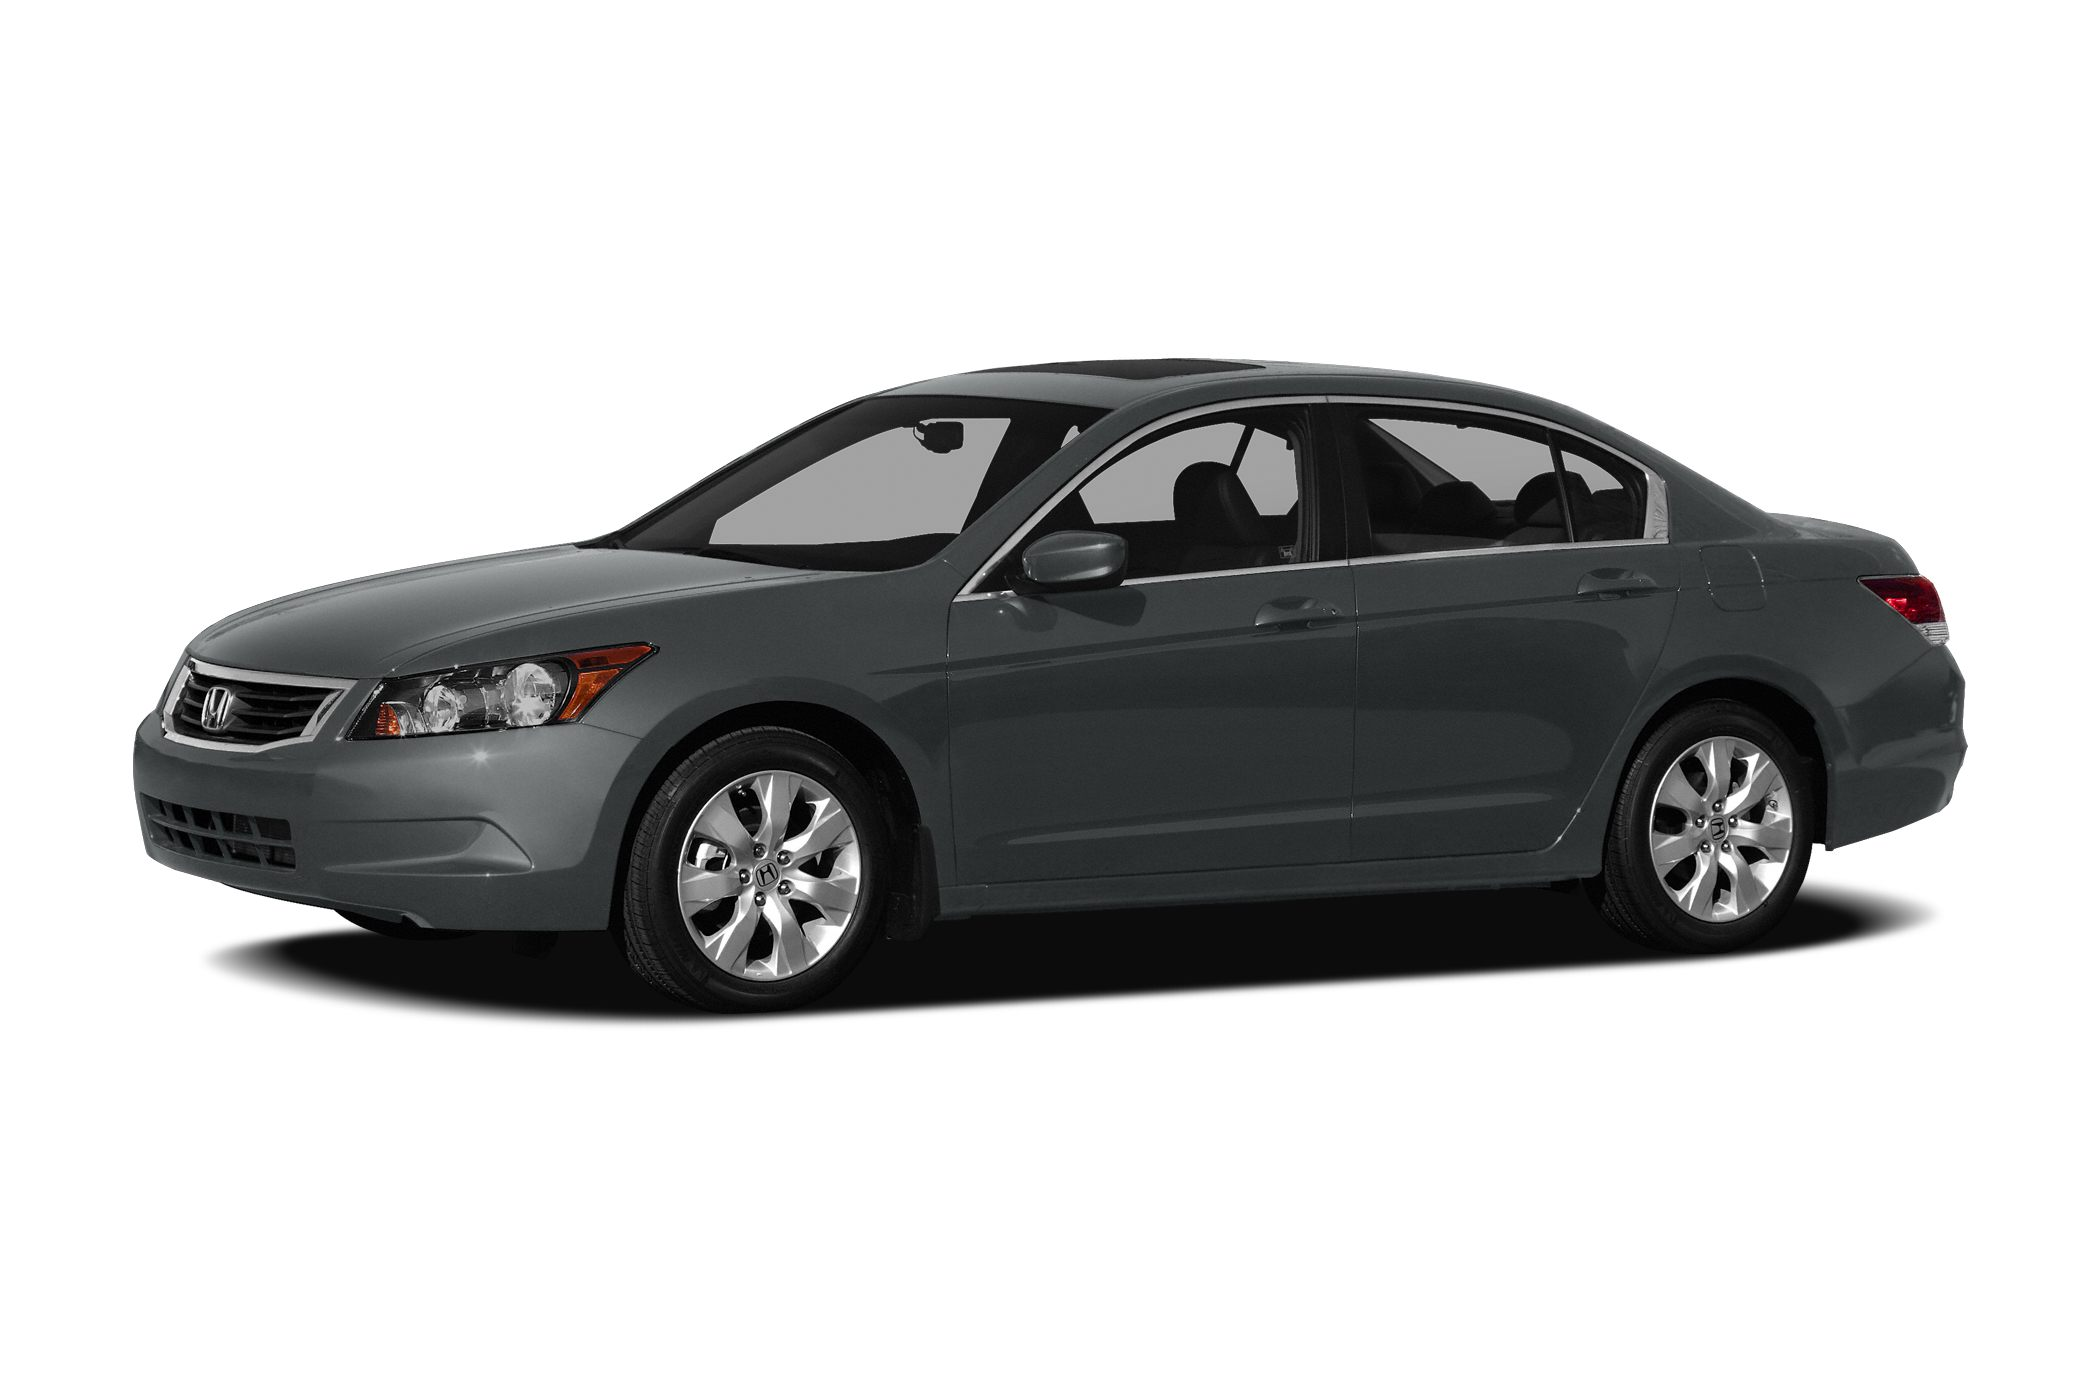 2010 Honda Accord 24 LX Real Winner Dont wait another minute There are used cars and then the